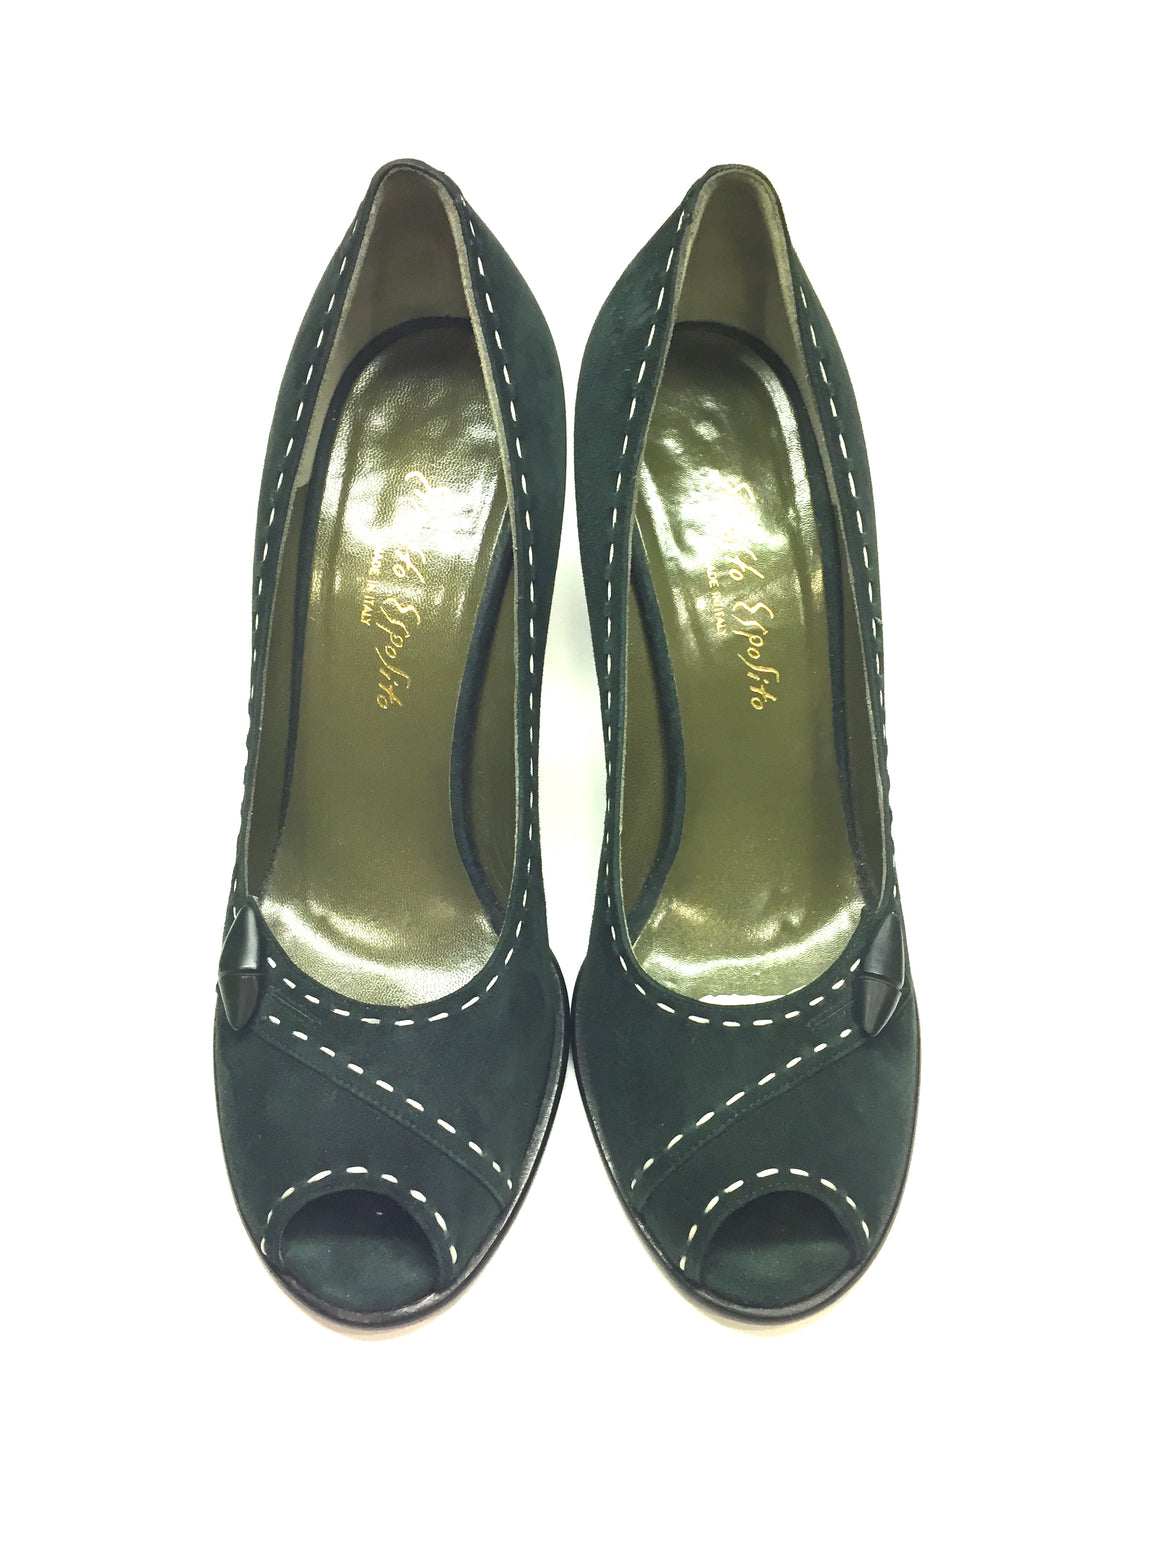 ERNESTO ESPOSITO Hunter-Green Suede Peep-Toe Spool-Heel Pumps Shoes Sz38.5